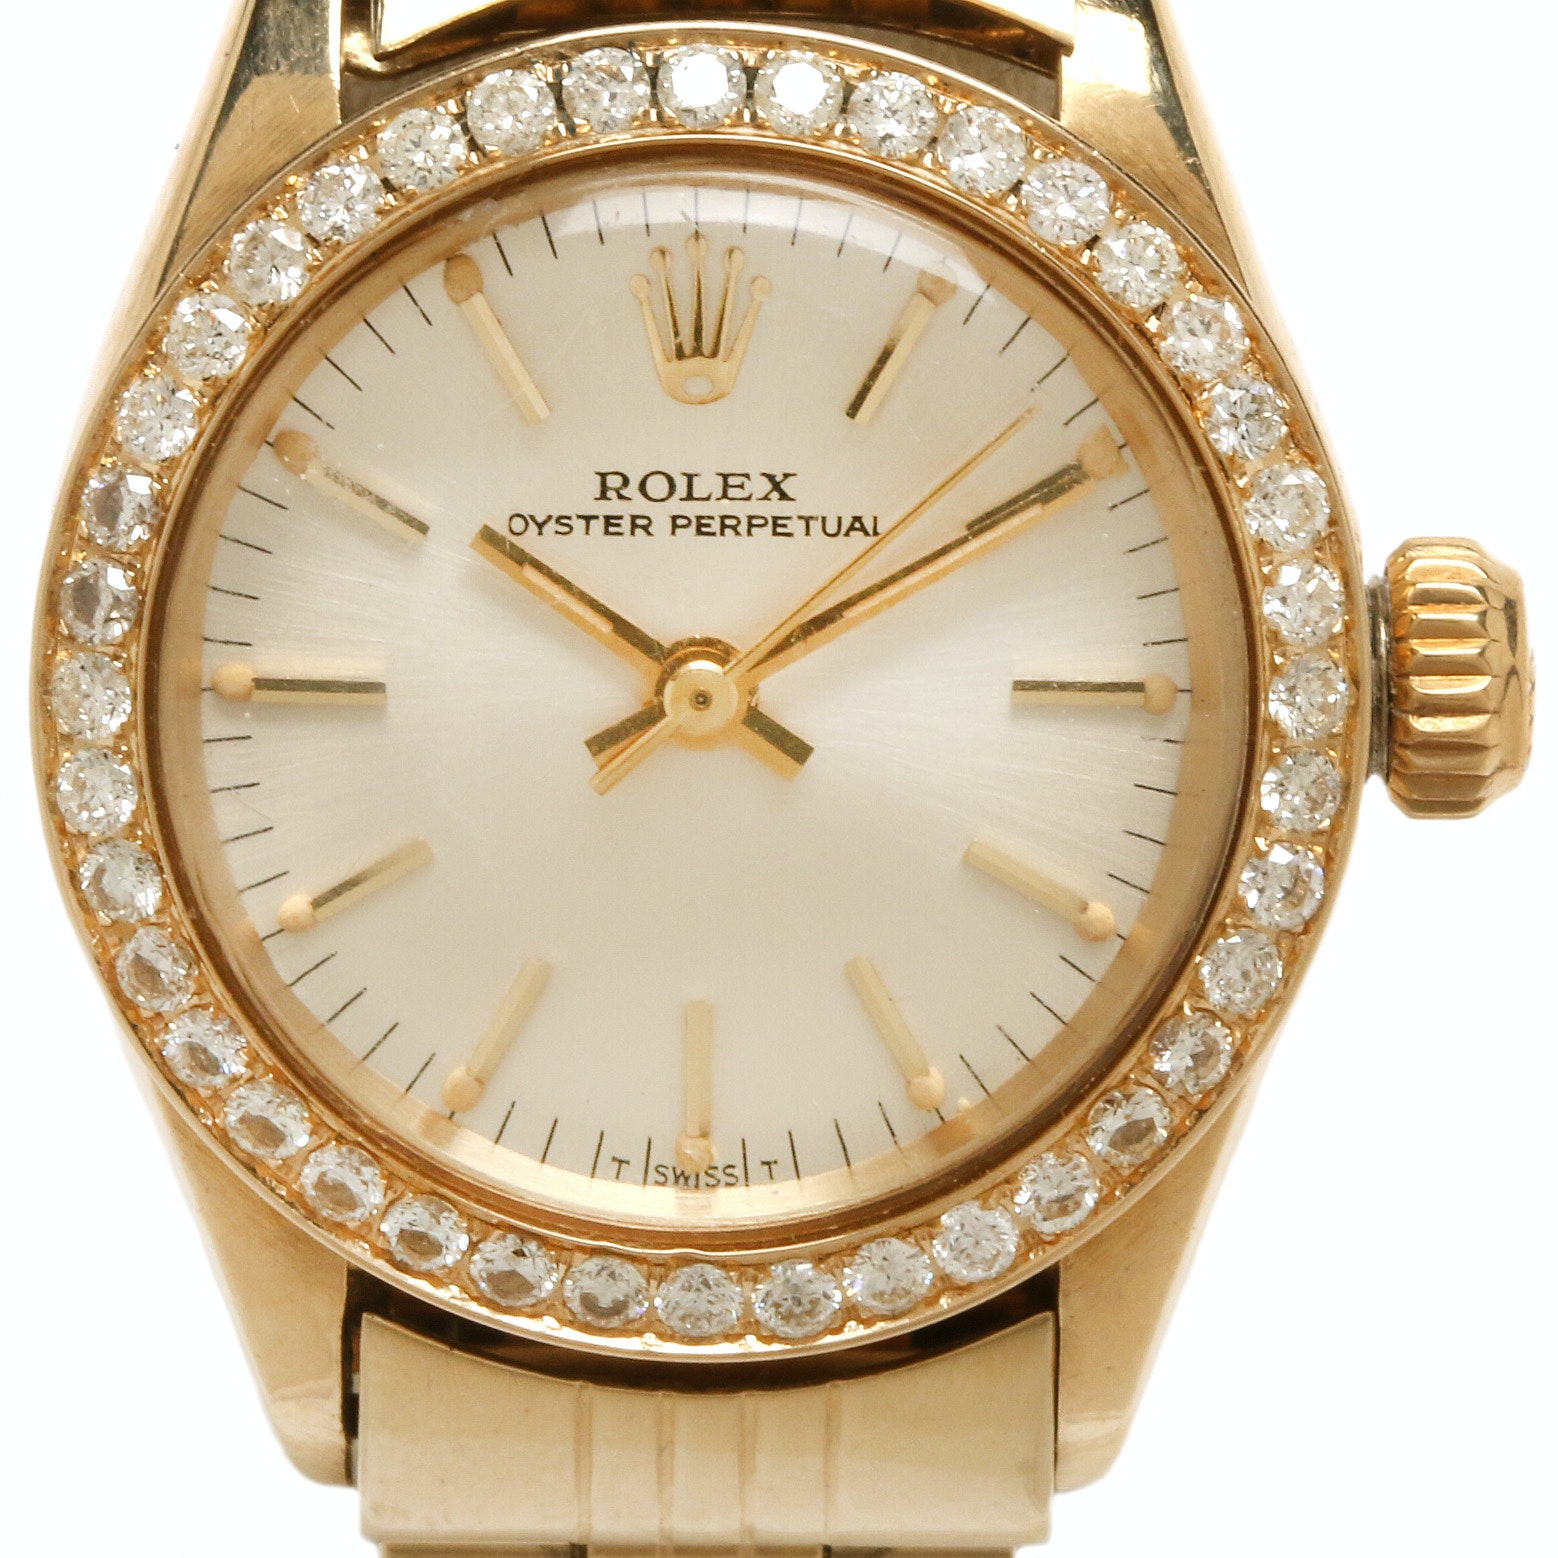 Rolex Oyster Perpetual 14K Yellow Gold Diamond Wristwatch, 1970